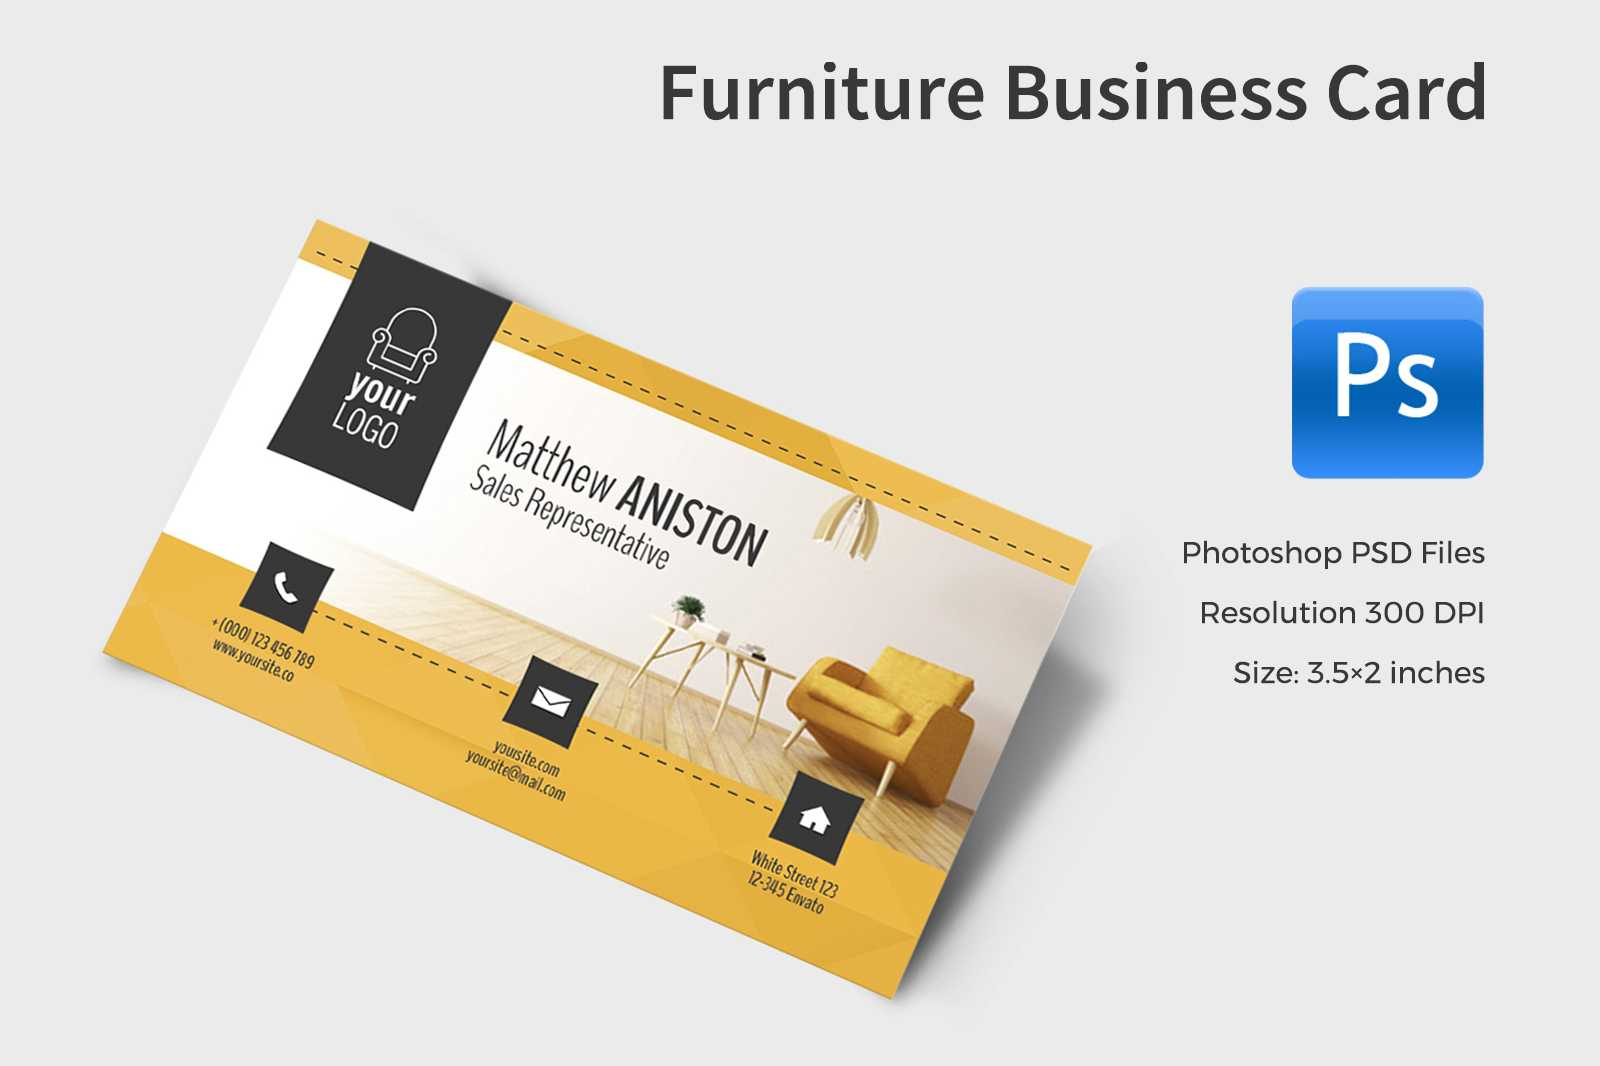 Furniture Business Card In Business Card Templates On Pertaining To Business Card Template Size Photoshop